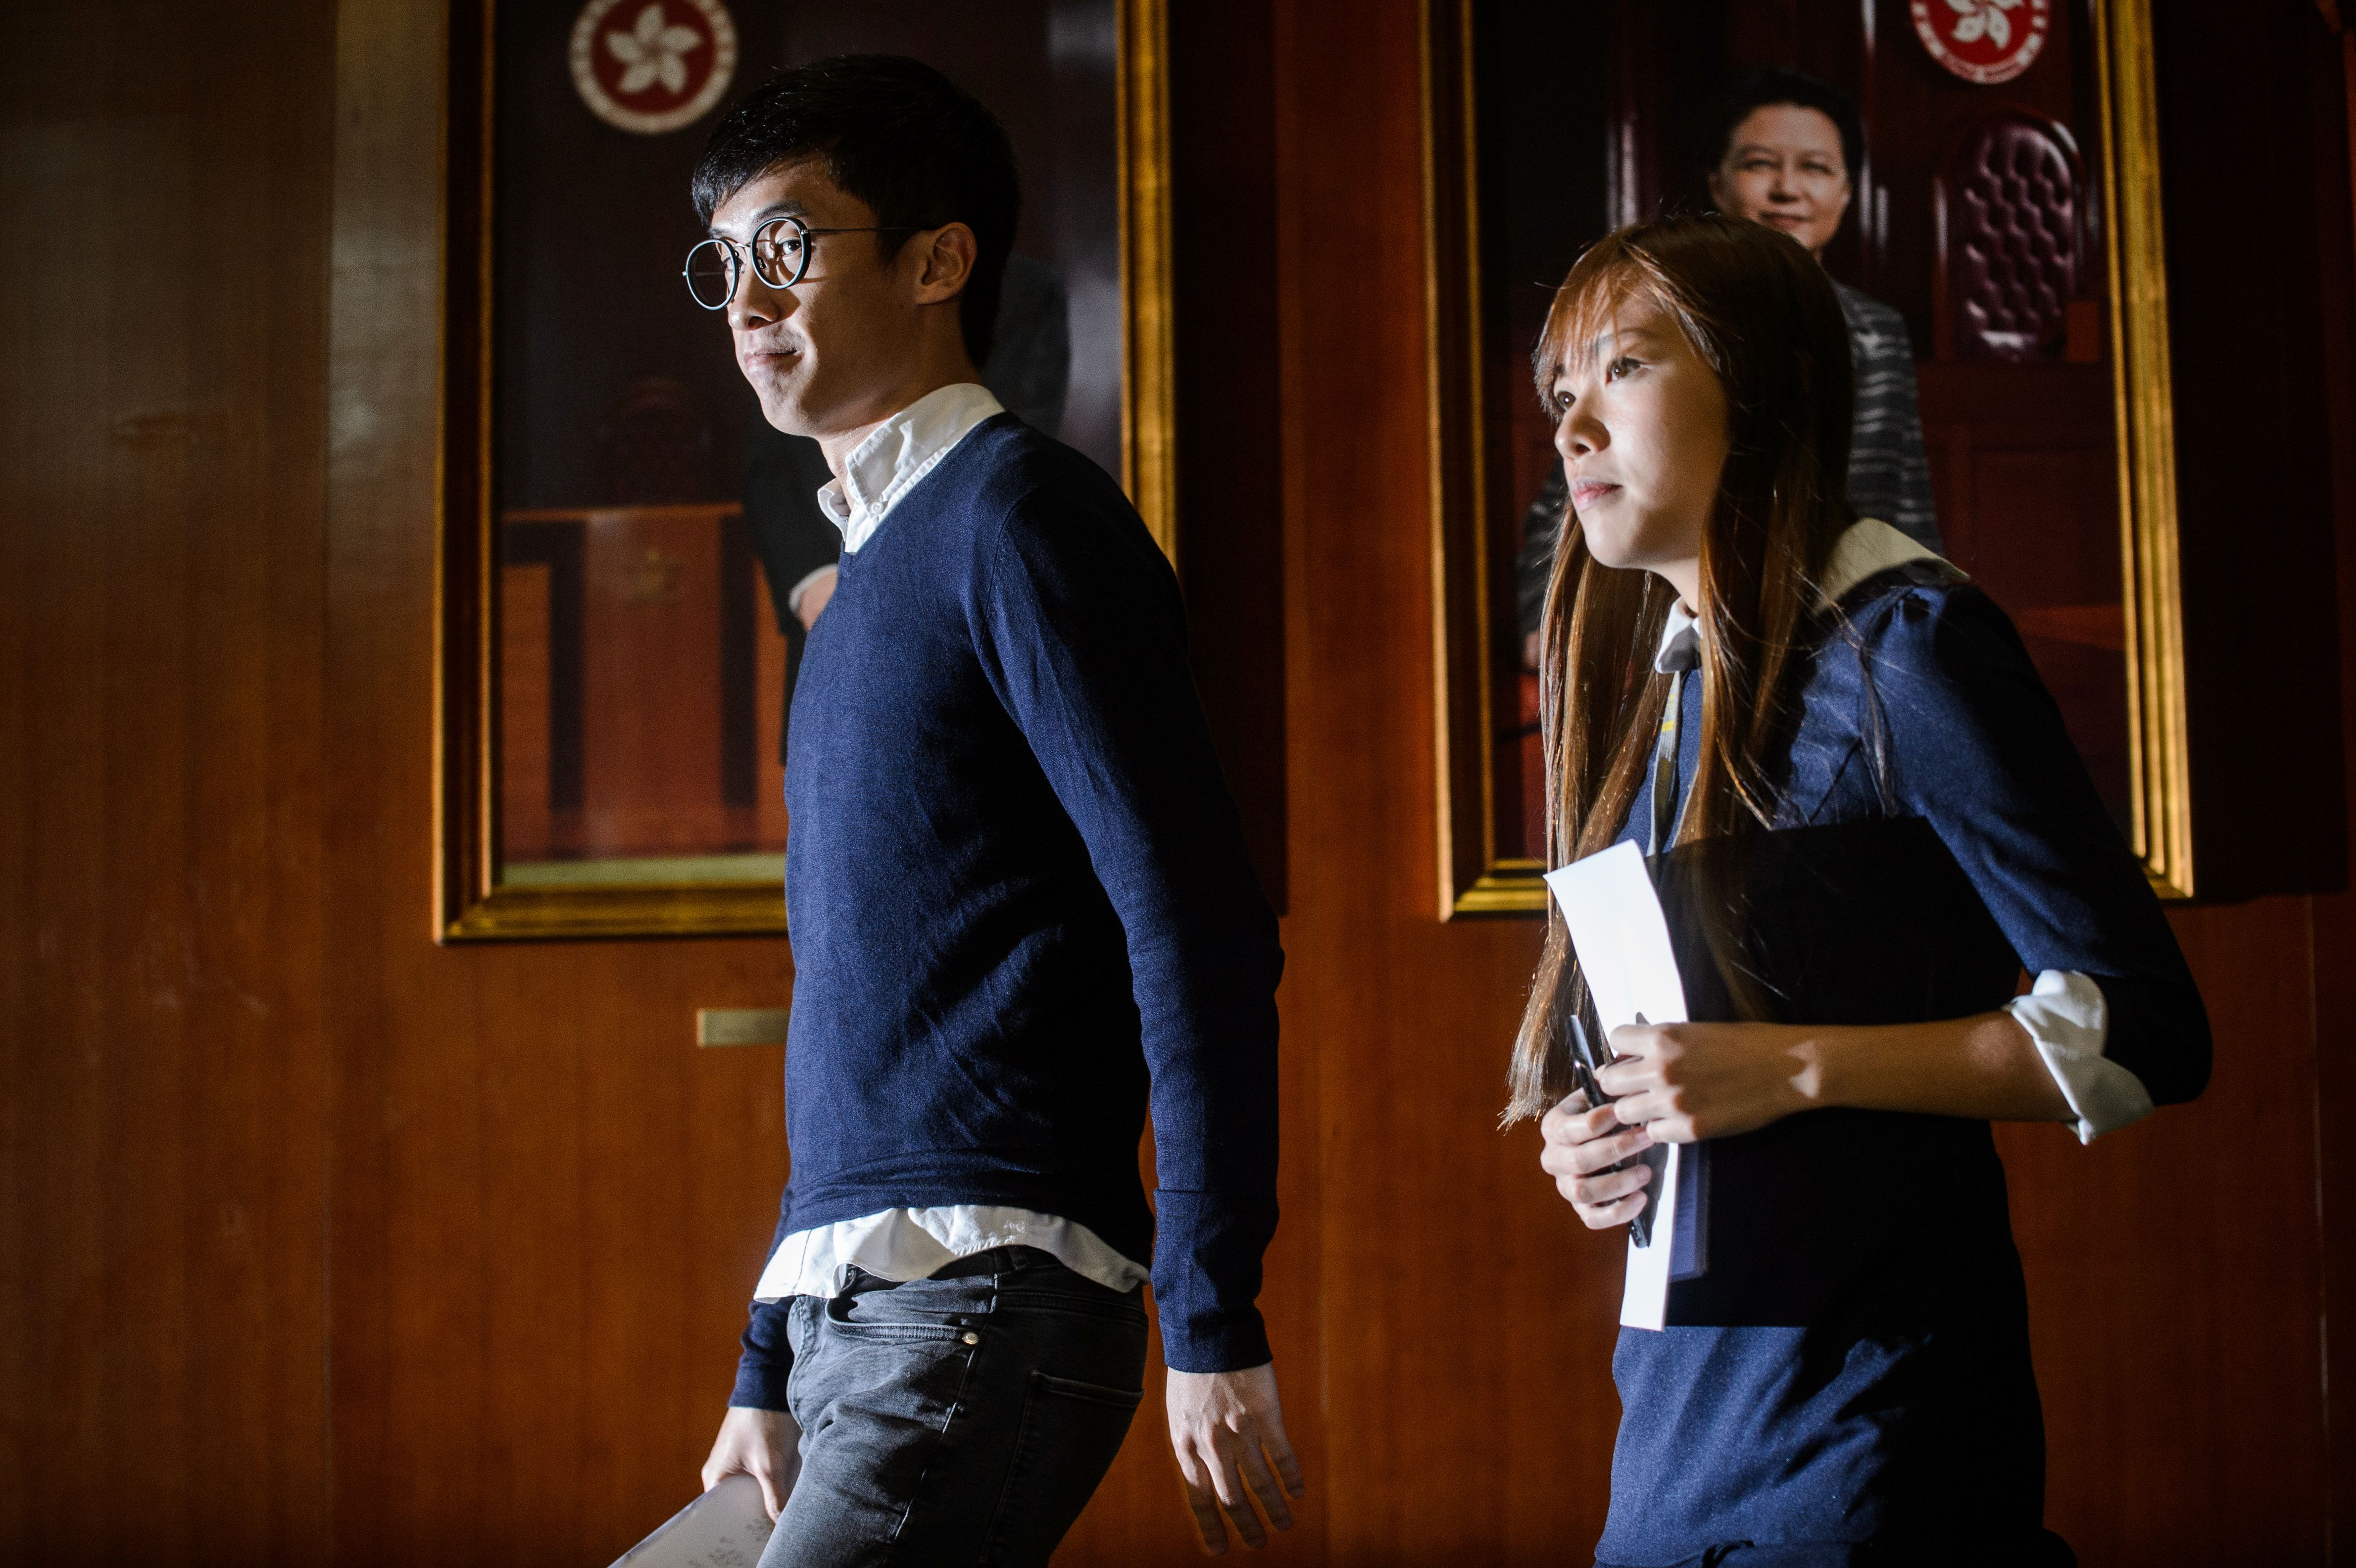 Newly elected pro-independence lawmakers Baggio Leung, left, and Yau Wai-ching arrive before speaking to the press at the Legislative Council in Hong Kong on Oct. 25, 2016